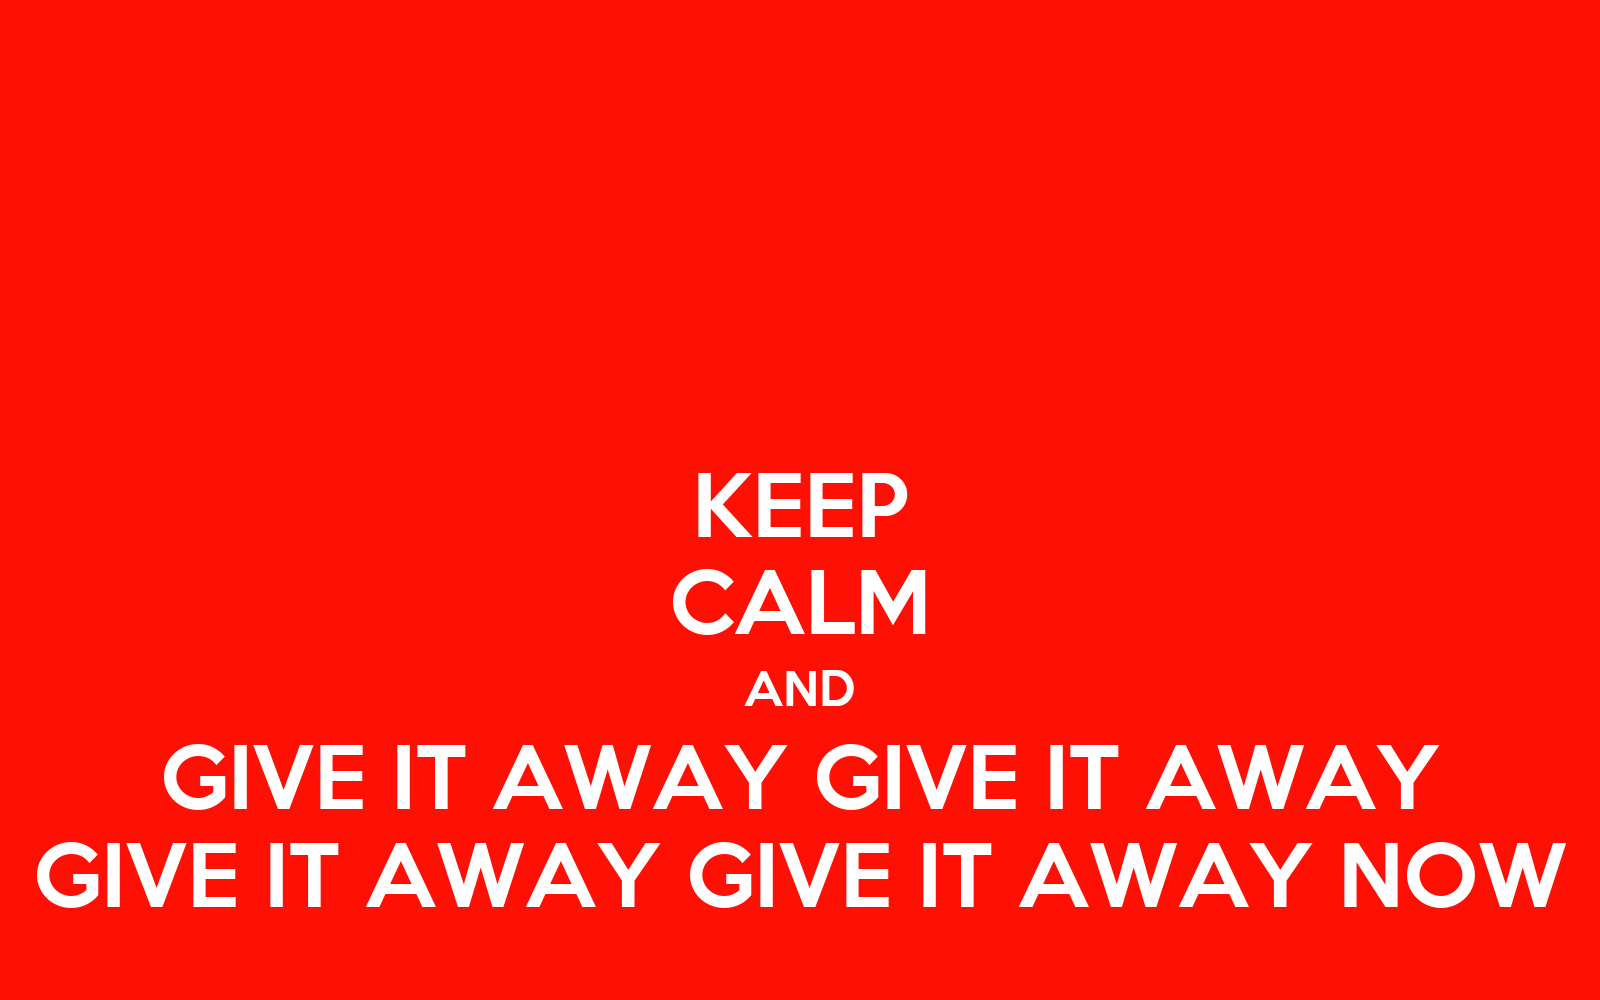 Give It Away